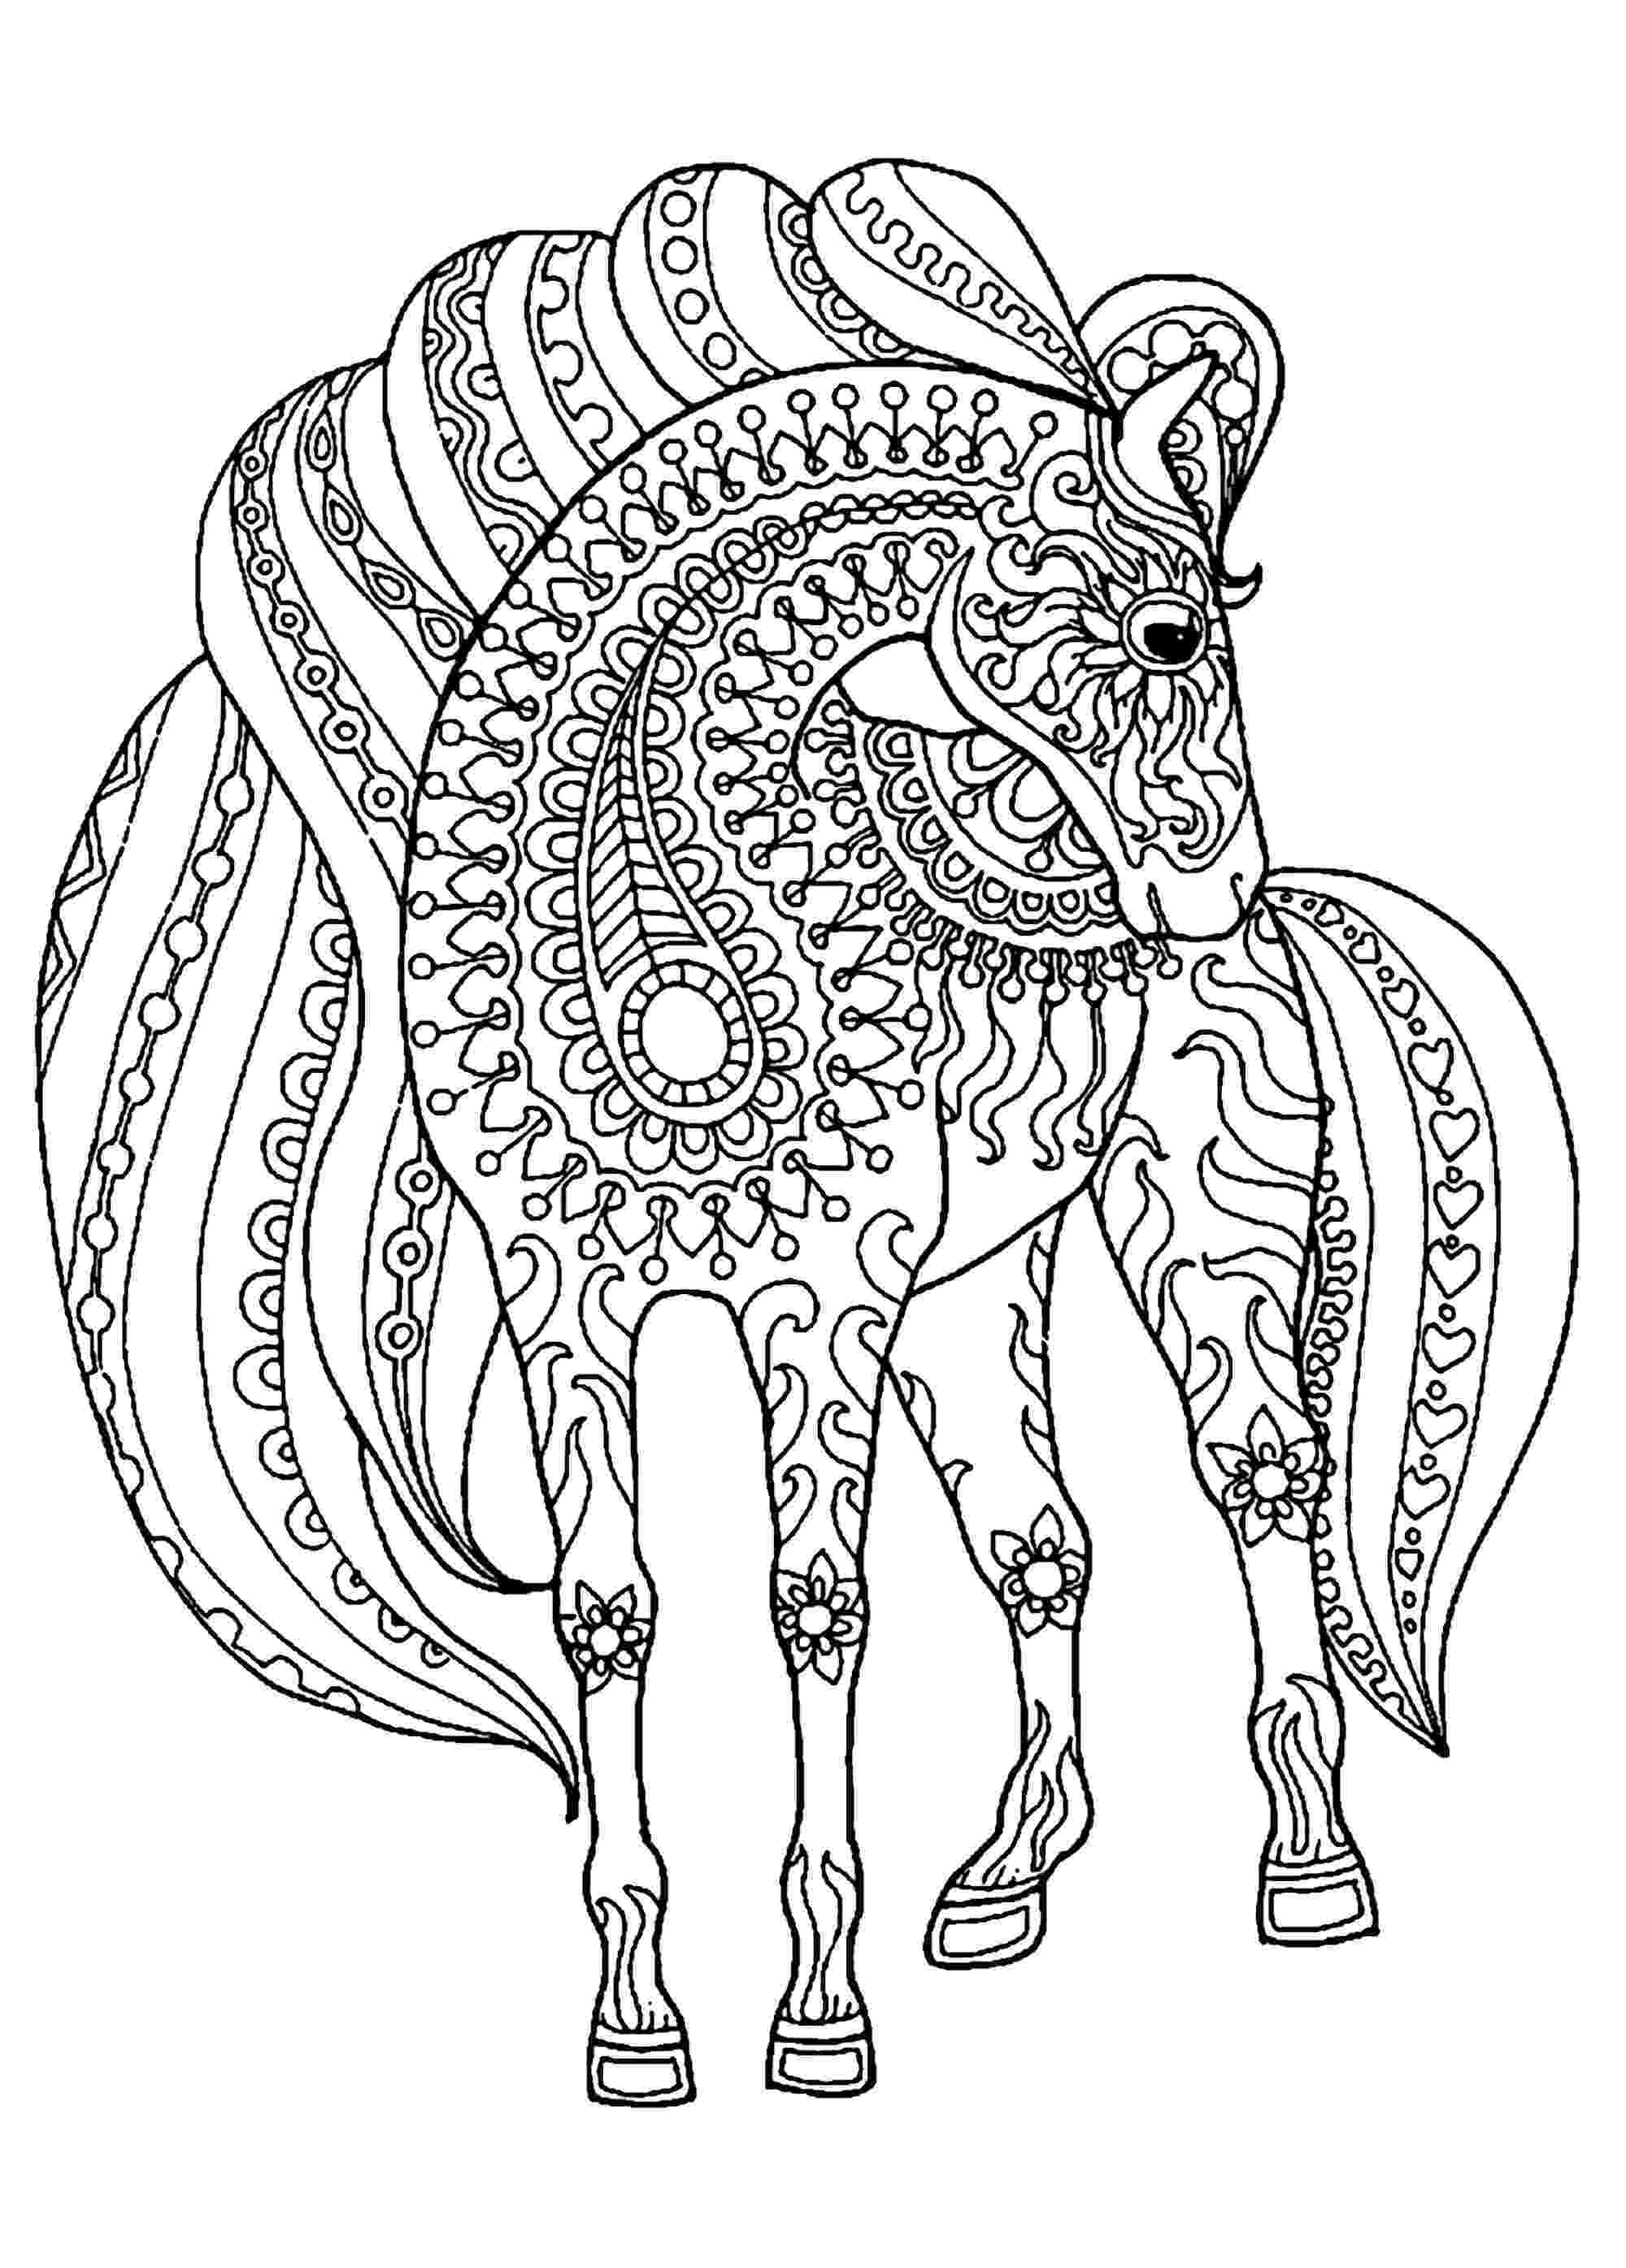 adult coloring pages animals animal coloring pages pdf elephant coloring page horse animals coloring adult pages